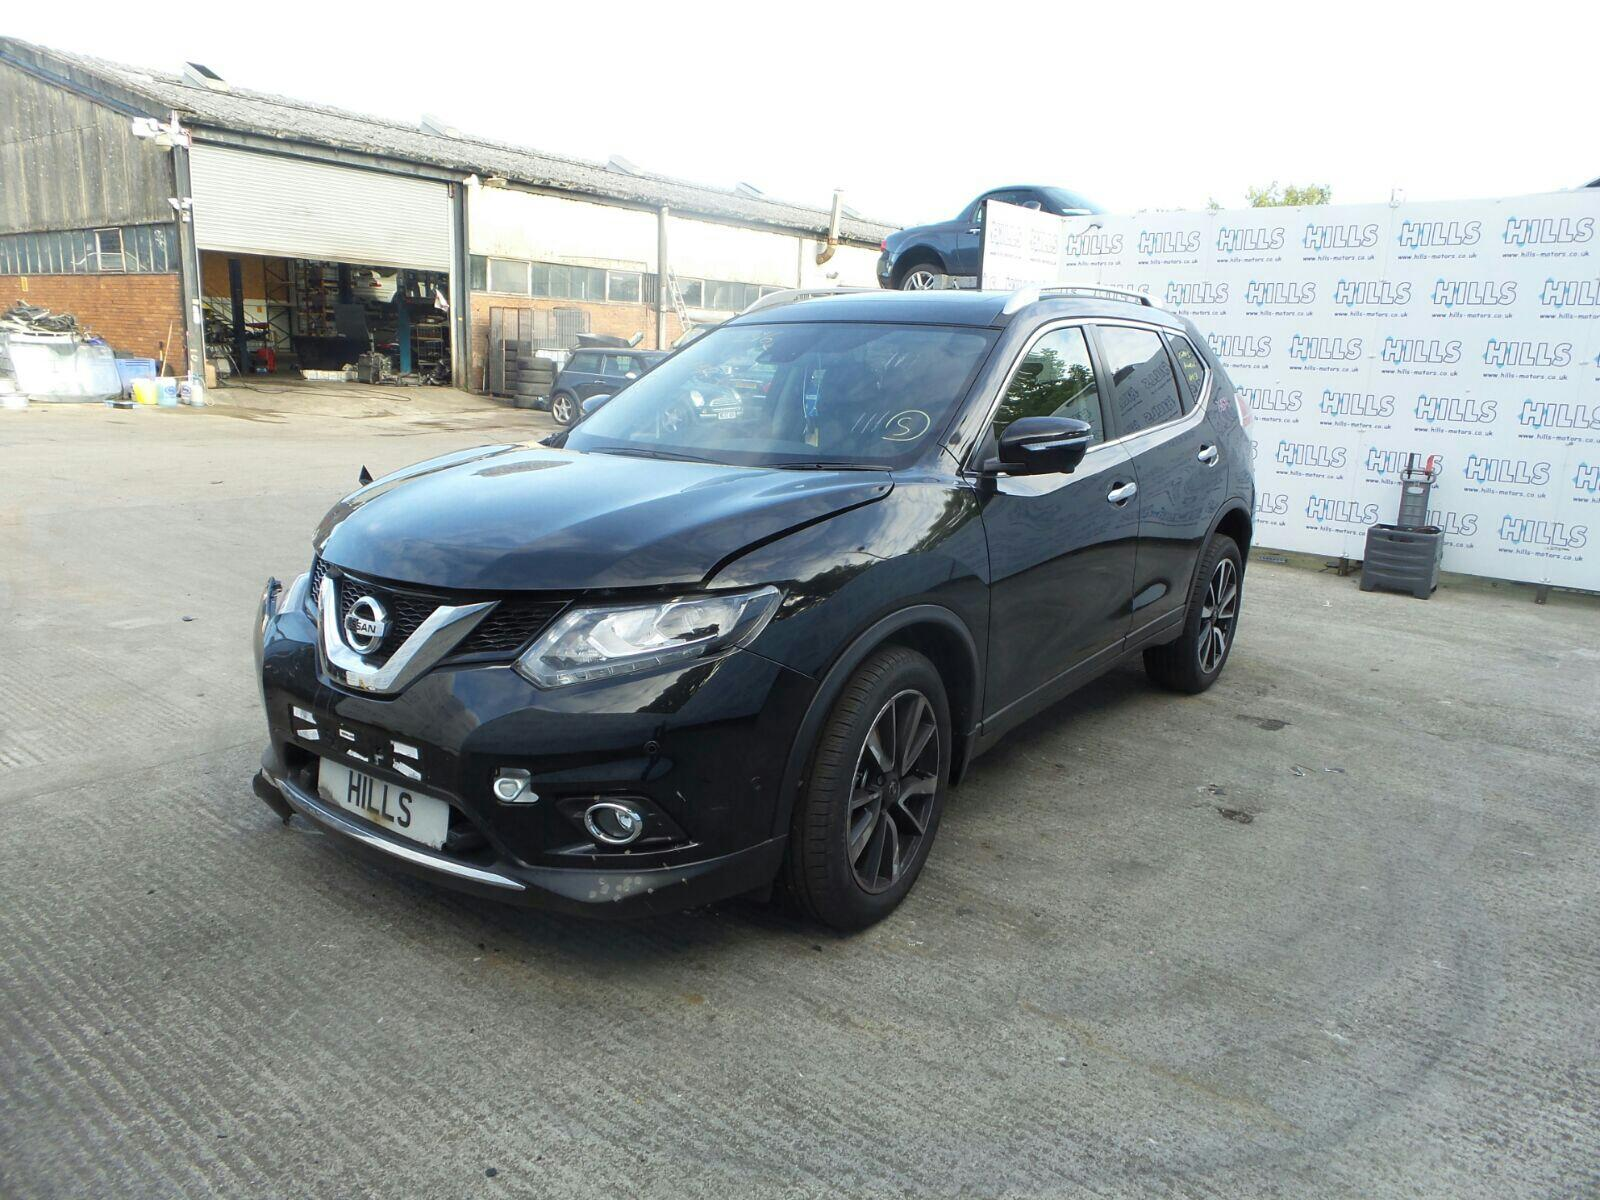 2016 nissan x trail 1600 turbo diesel engine r9m euro 6 ebay. Black Bedroom Furniture Sets. Home Design Ideas